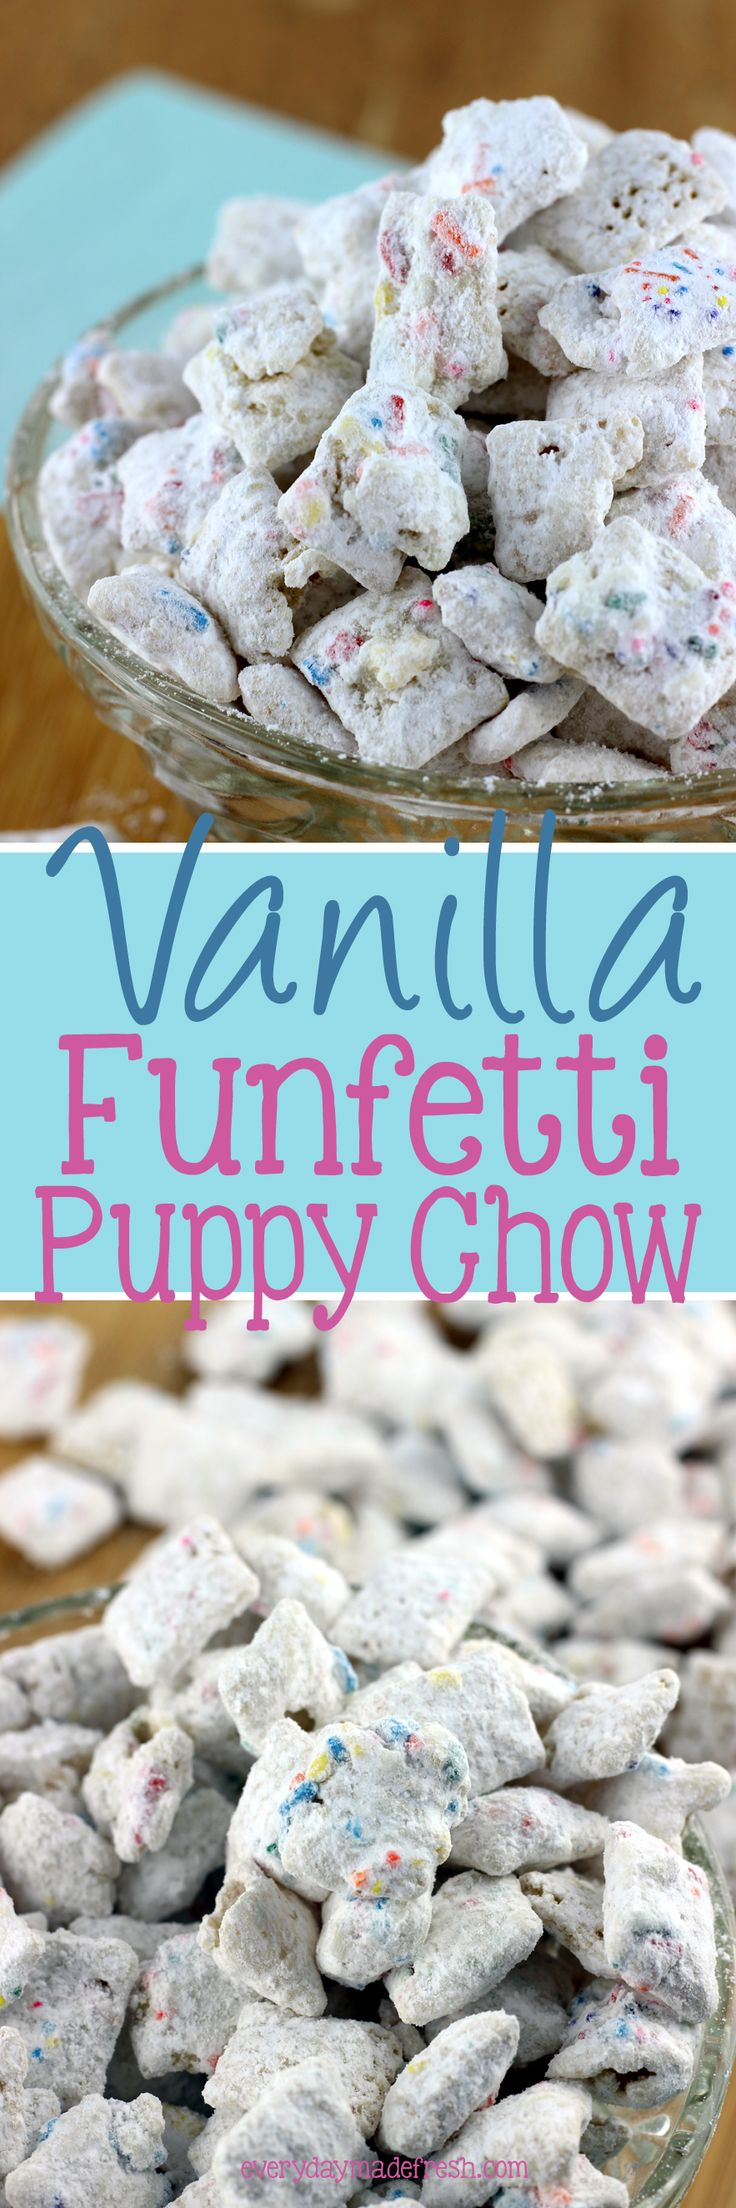 Vanilla Funfetti Puppy Chow is the ideal snack when you're craving something sweet and crunchy! | EverydayMadeFresh.com http://www.everydaymadefresh.com/vanilla-funfetti-puppy-chow/